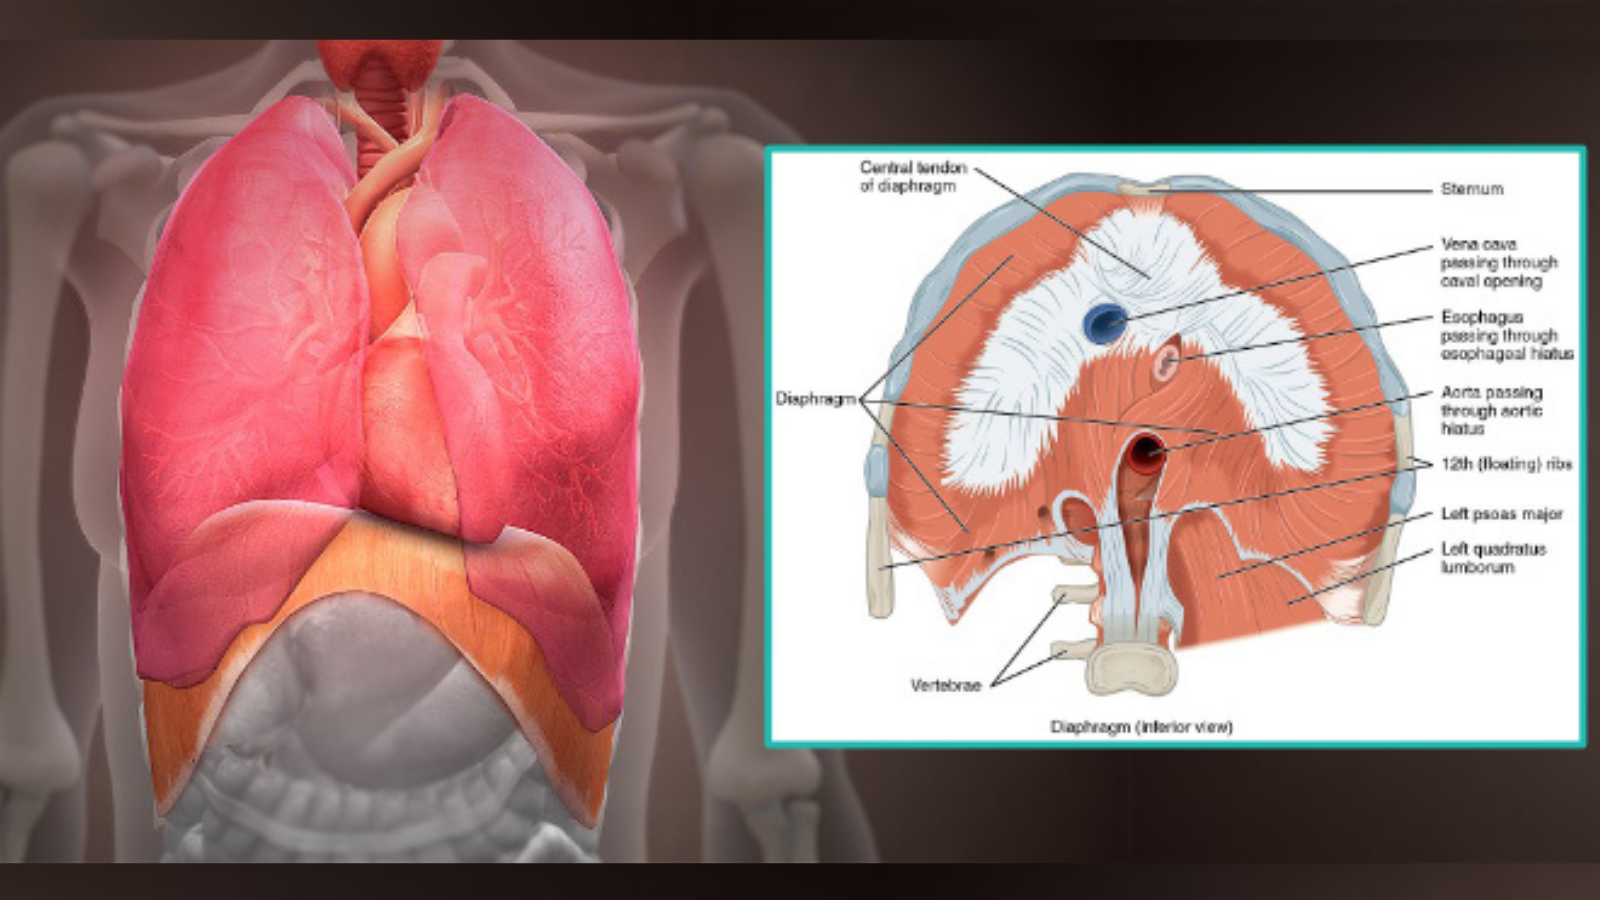 How to practice yoga mindfully and with anatomical knowledge of the diaphragm